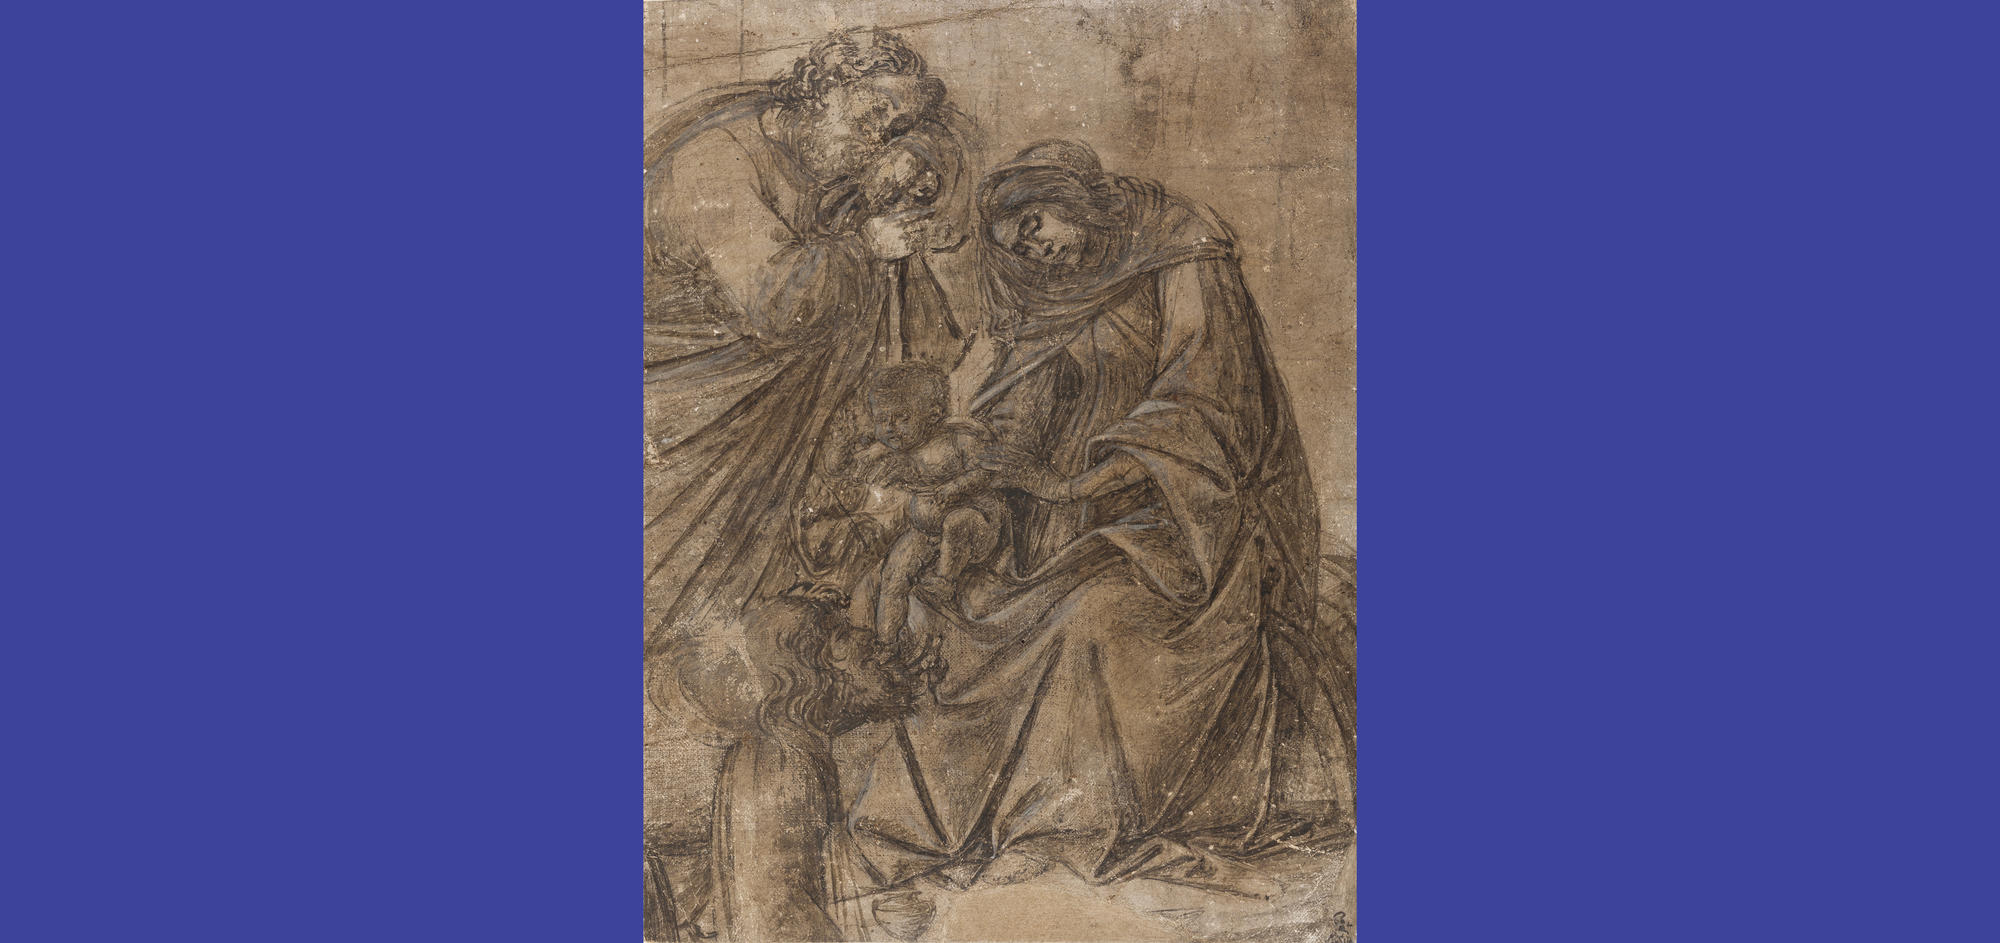 Sandro Botticelli (Italian, 1444 or 1445-1510), Virgin and Child with Saint Joseph and a Magus (fragment of The Adoration of the Magi), about 1500. Brush and brown egg tempera, heightened with white, over charcoal or chalk on prepared linen, 30.9 x 23.4 cm. The Fitzwilliam Museum, Cambridge. © The Fitzwilliam Museum, Cambridge